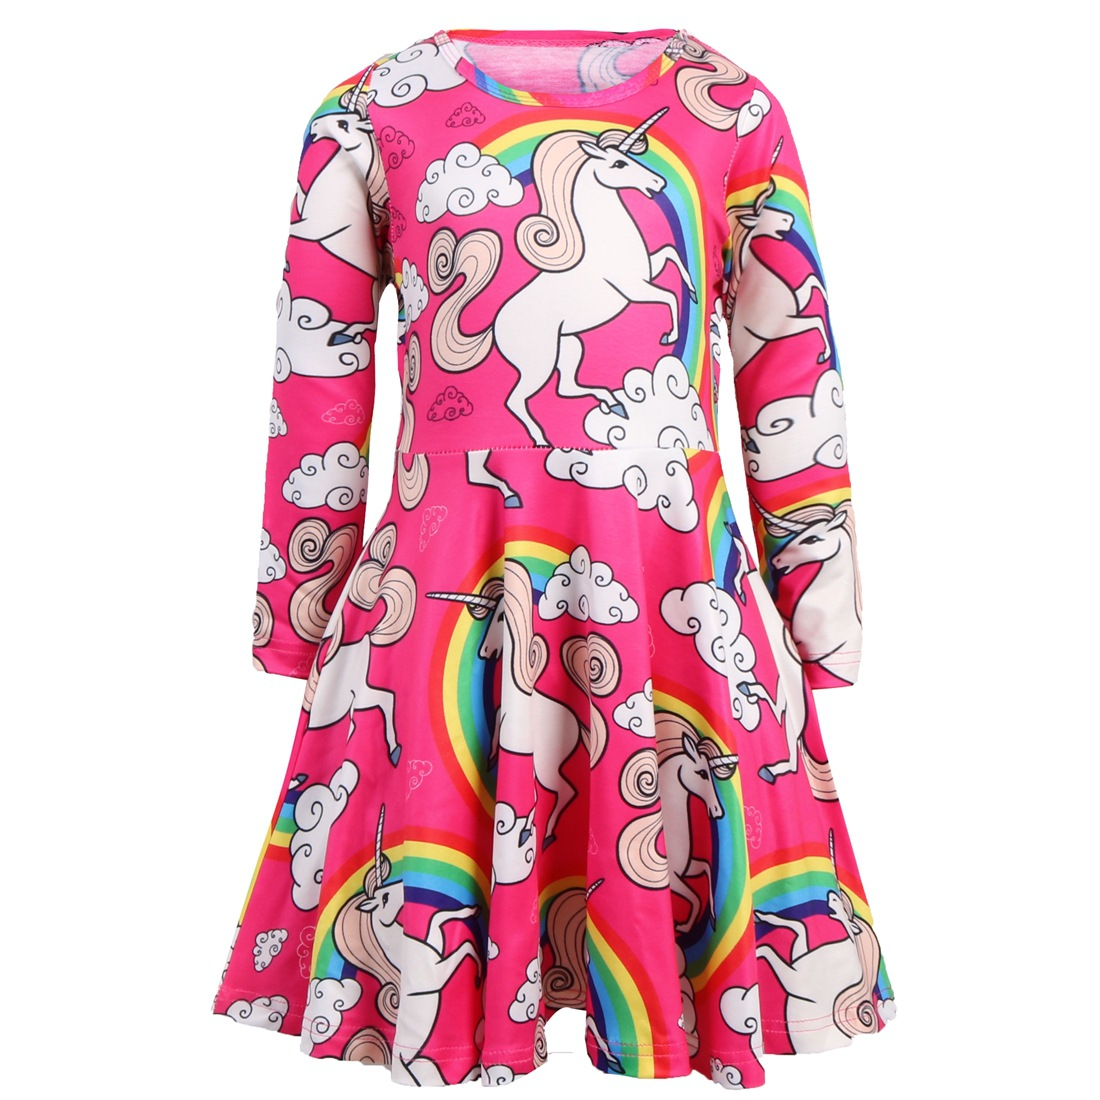 Little Girl Unicorn Dress Princess Rainbow Unicorn Dresses for Kids Girls Cotton Floral Long Sleeve Casual Clothes 5-10 Years